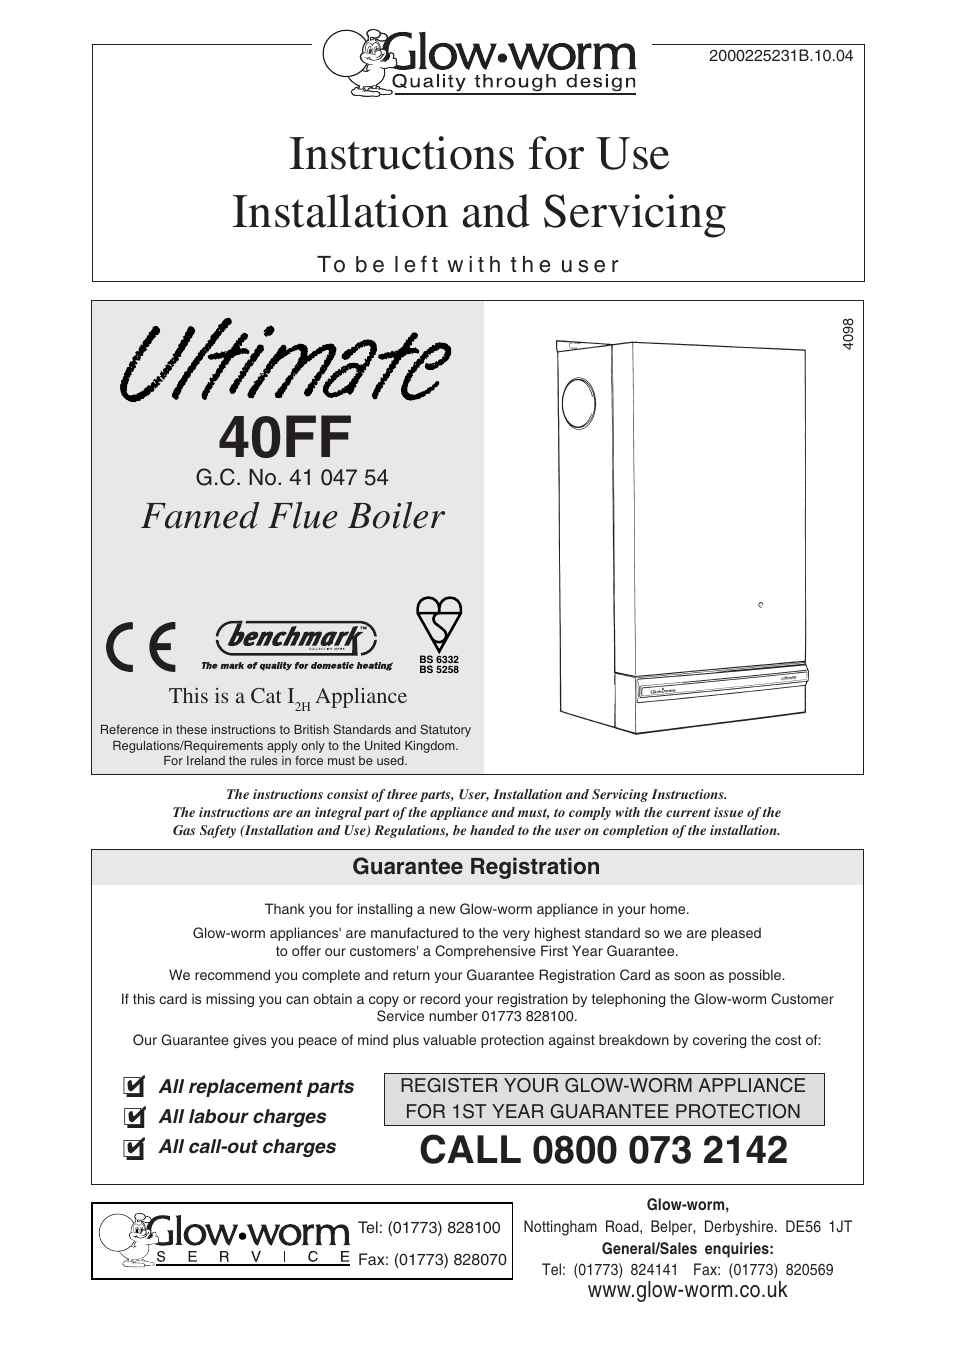 Glow-worm Ultimate 40FF User Manual | 40 pages